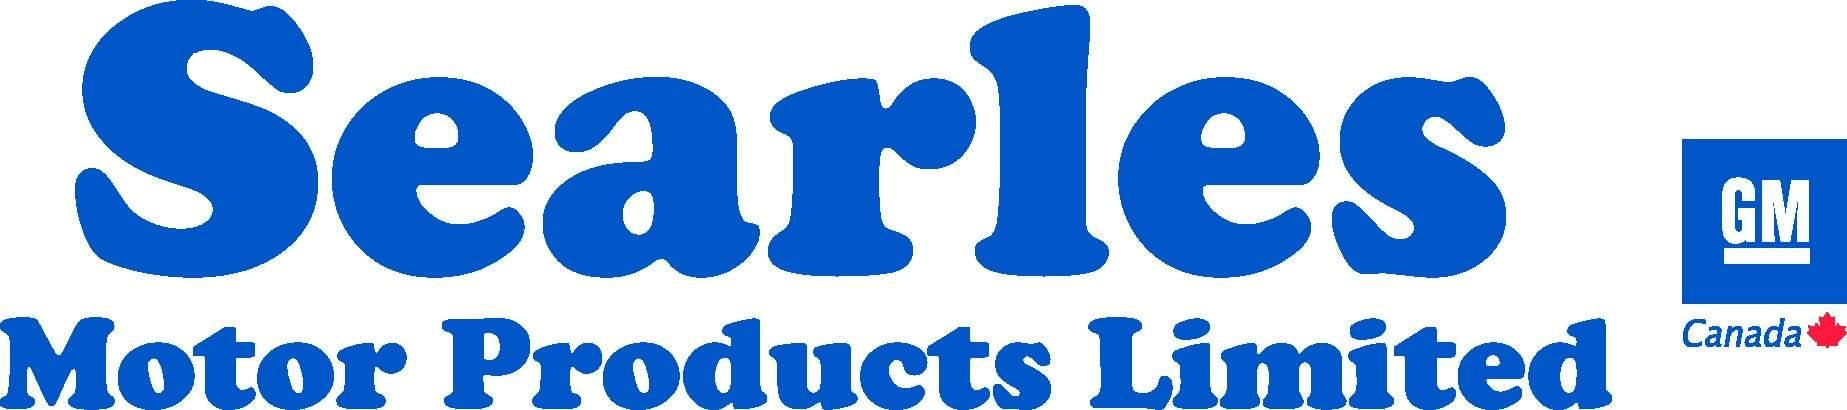 Searles Motor Products Limited